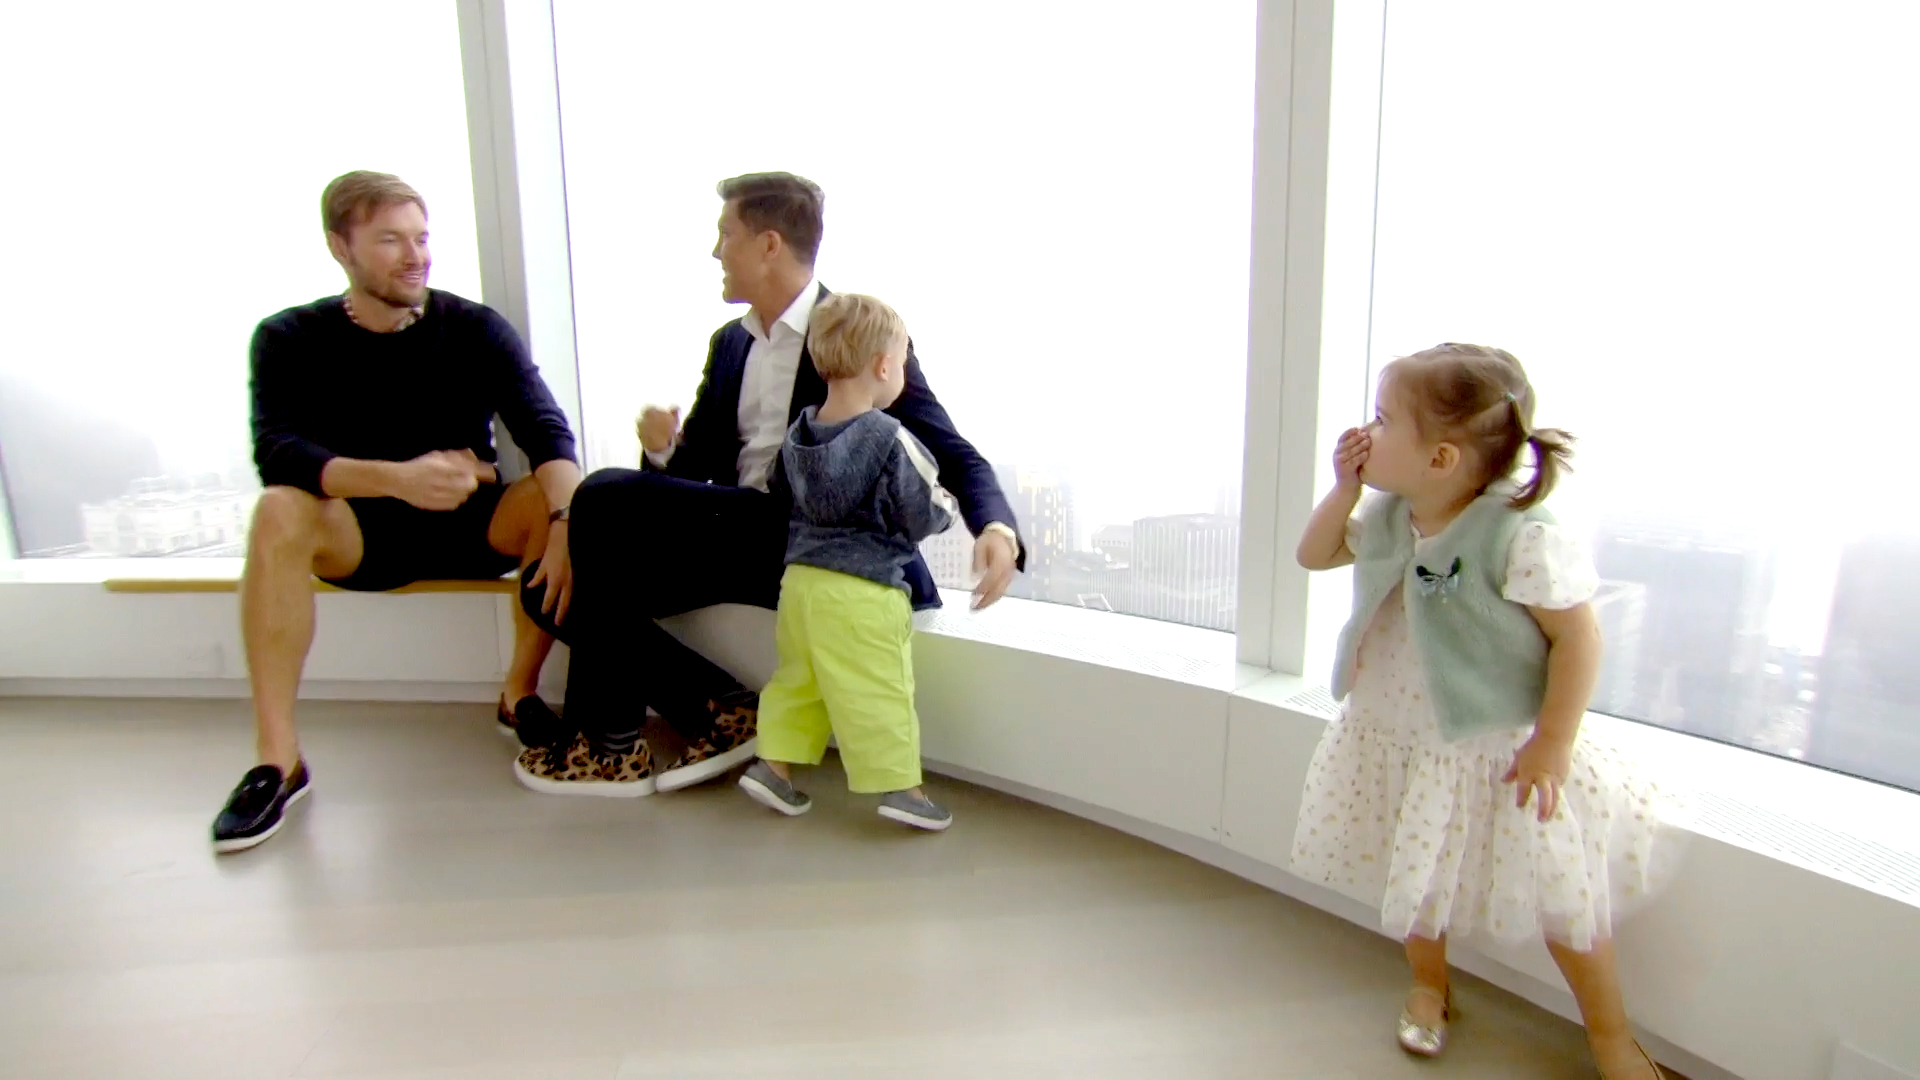 Mdlny 814 Fredrik Moves His Family To La